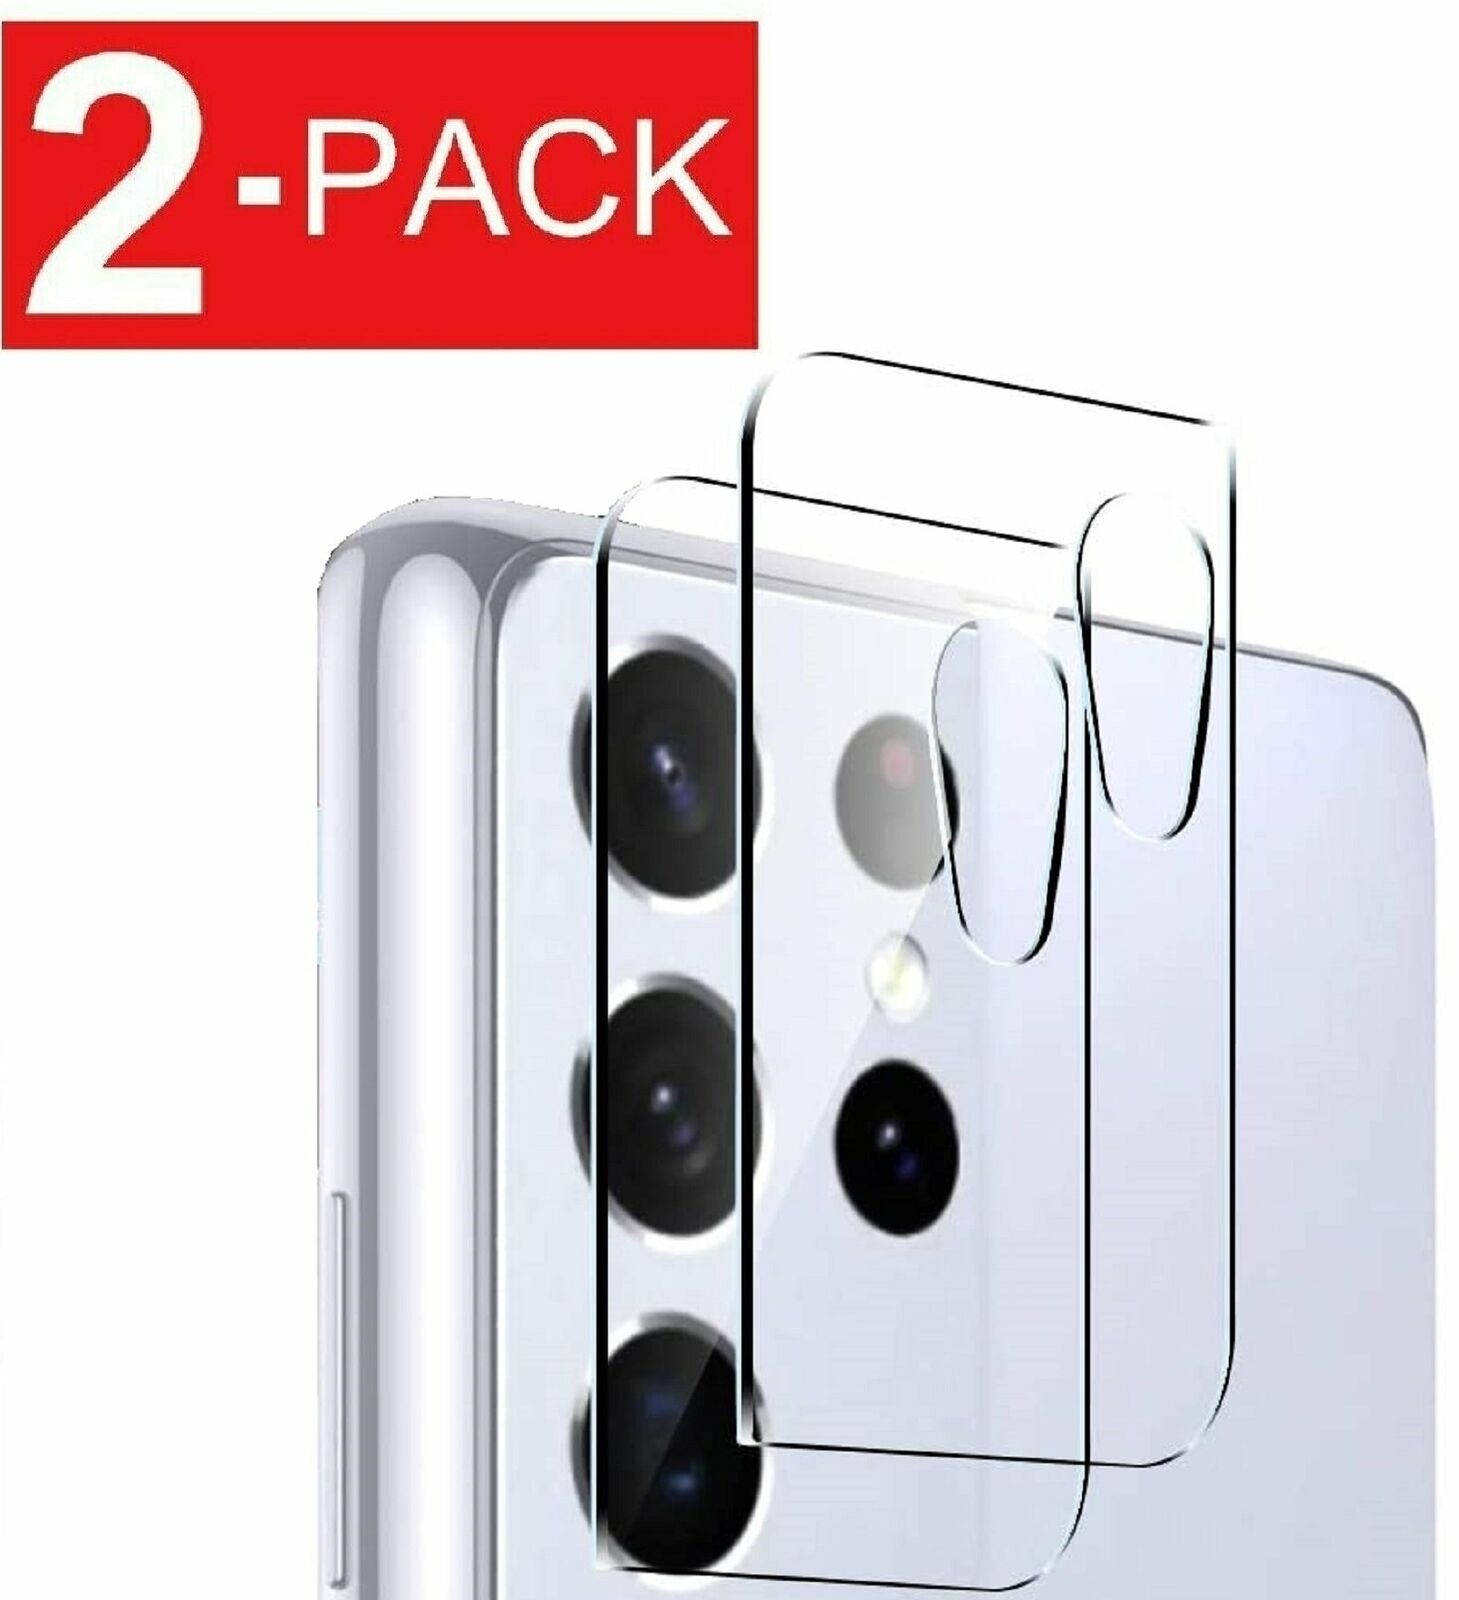 2-Pack For Samsung Galaxy S21 PLUS Ultra 5G Camera Lens Tempered Glass Protector Guard